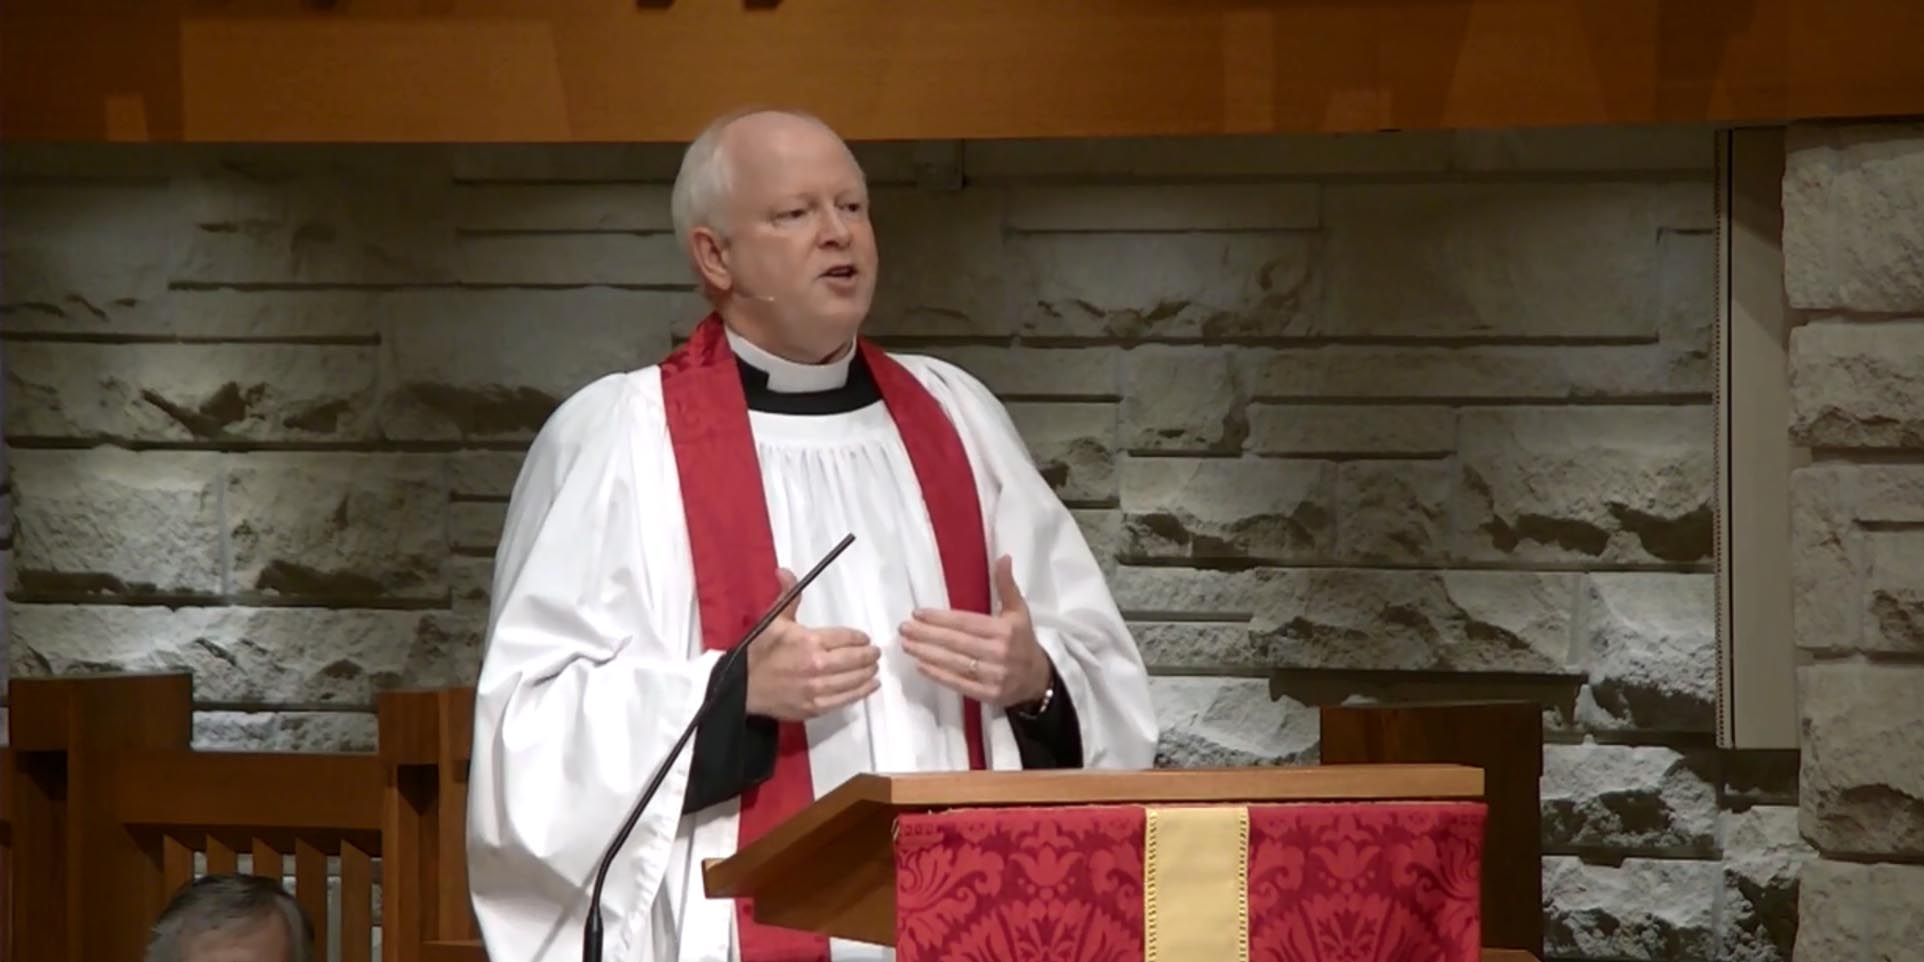 Maundy Thursday Sermon by the Rev. Reagan Cocke